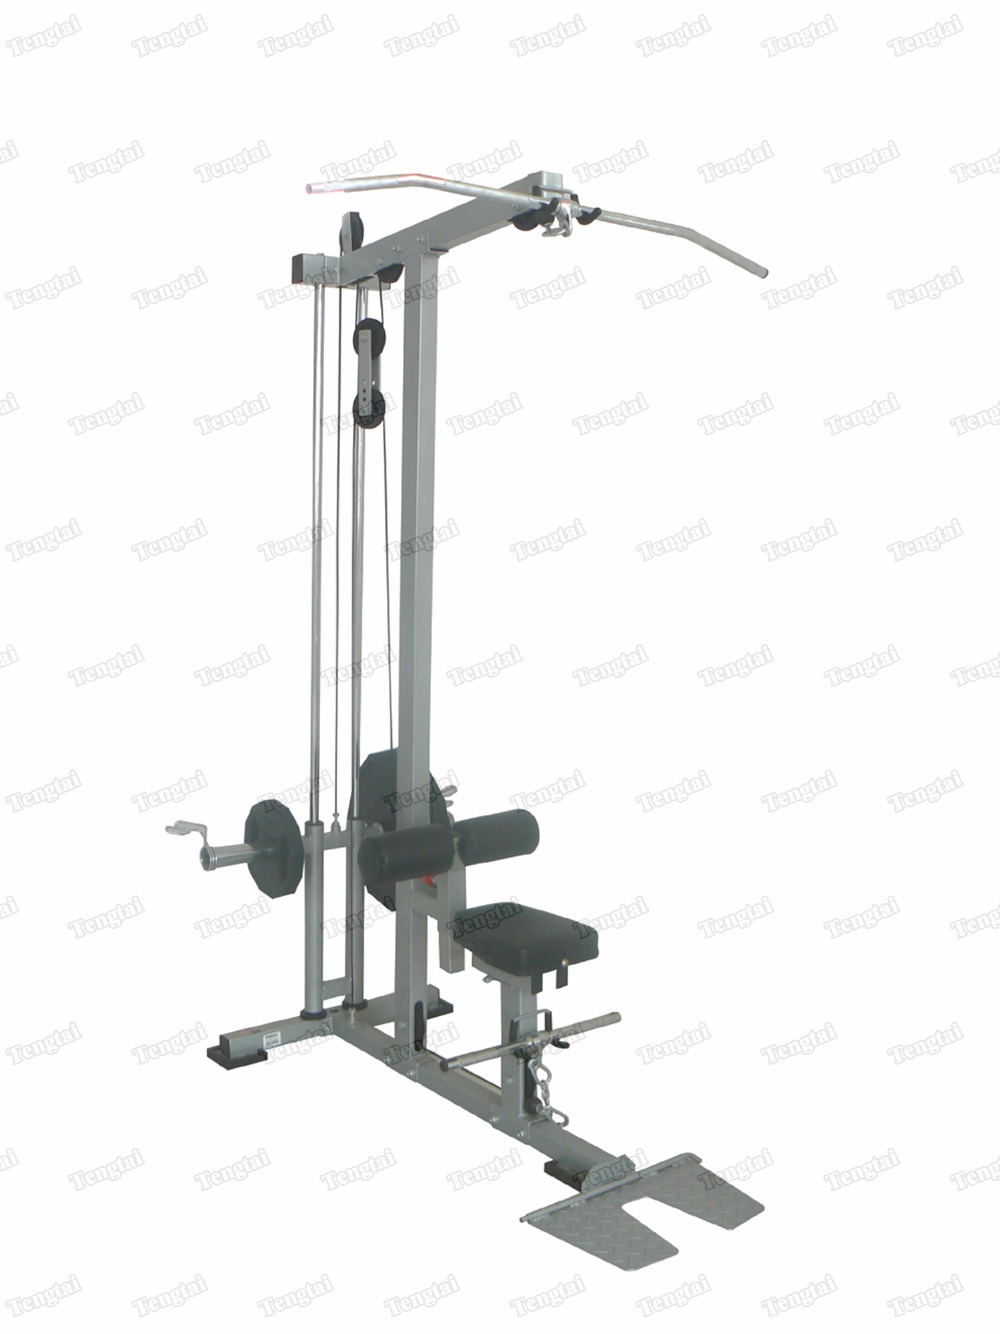 Home Gym Equipment Th053a With Plate Load Weight Body Building Equipment Gym Equipment Home Gymequipment Gym Aliexpress